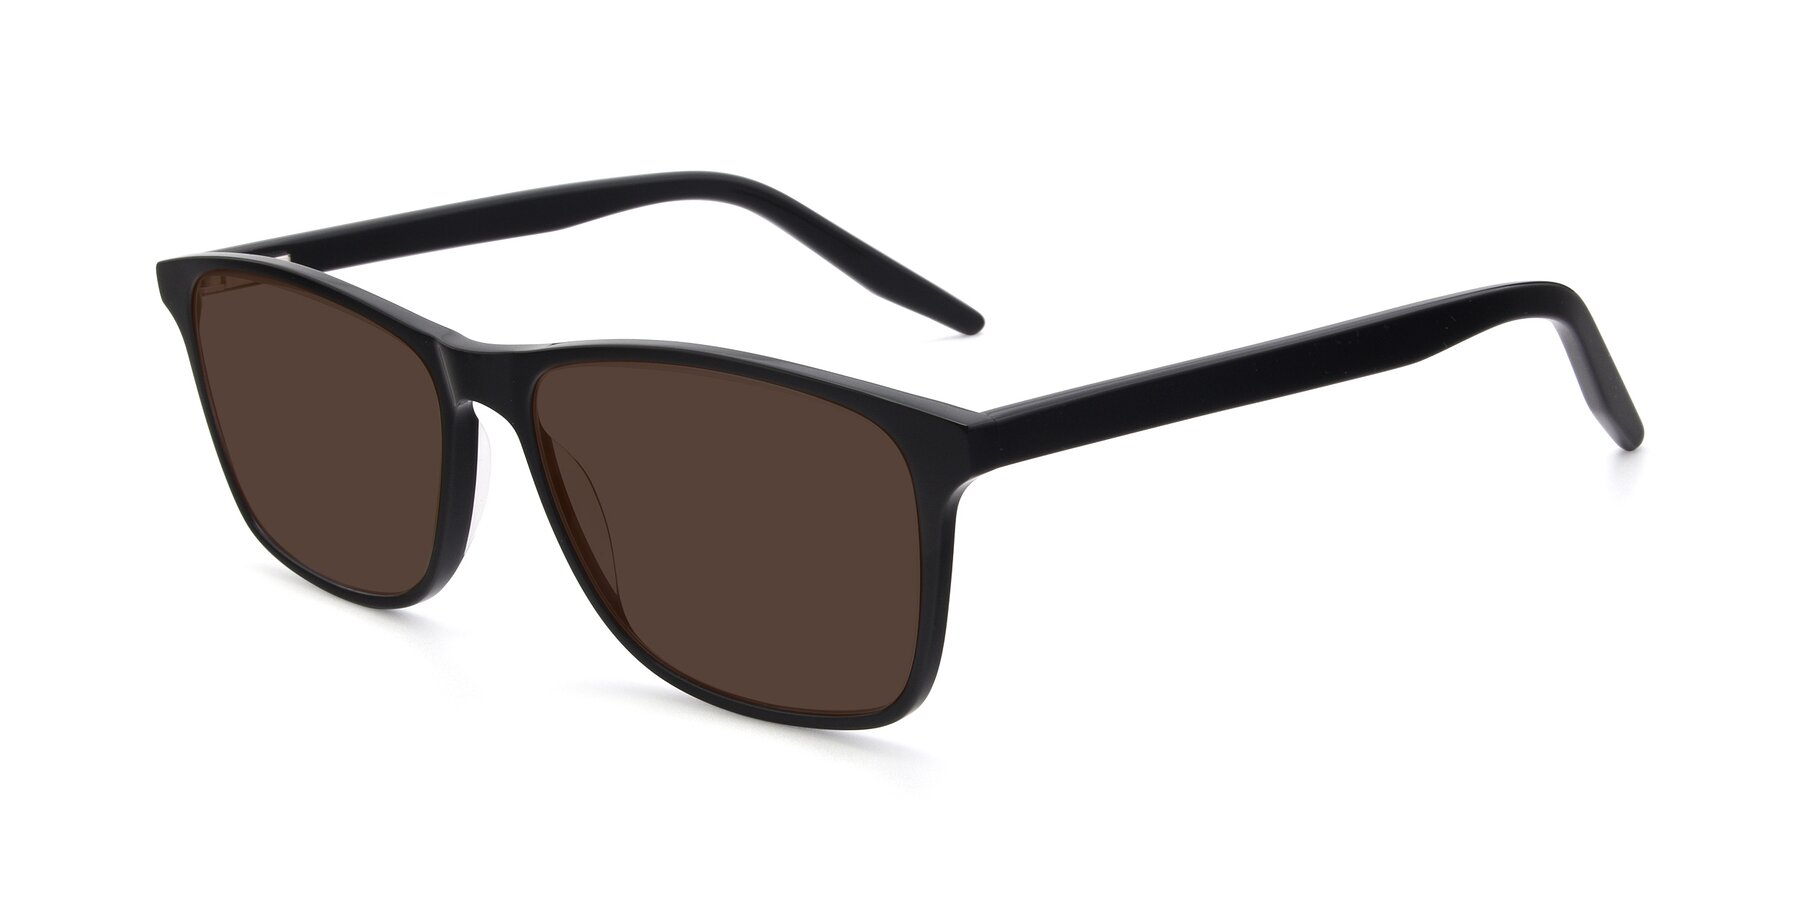 Angle of 17500 in Black with Brown Tinted Lenses